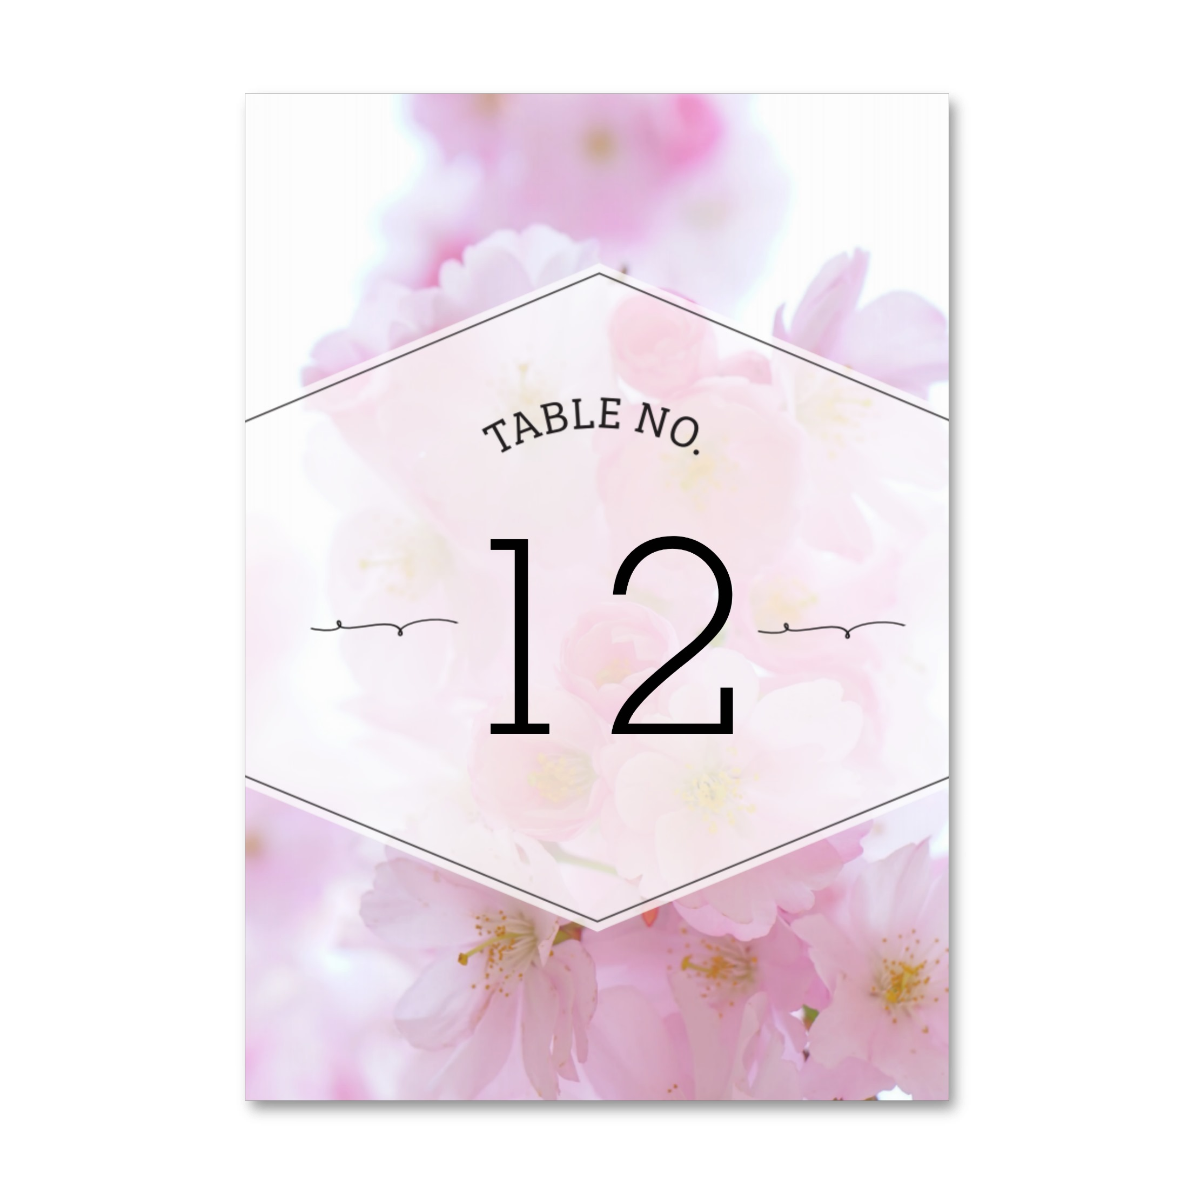 table no. cards